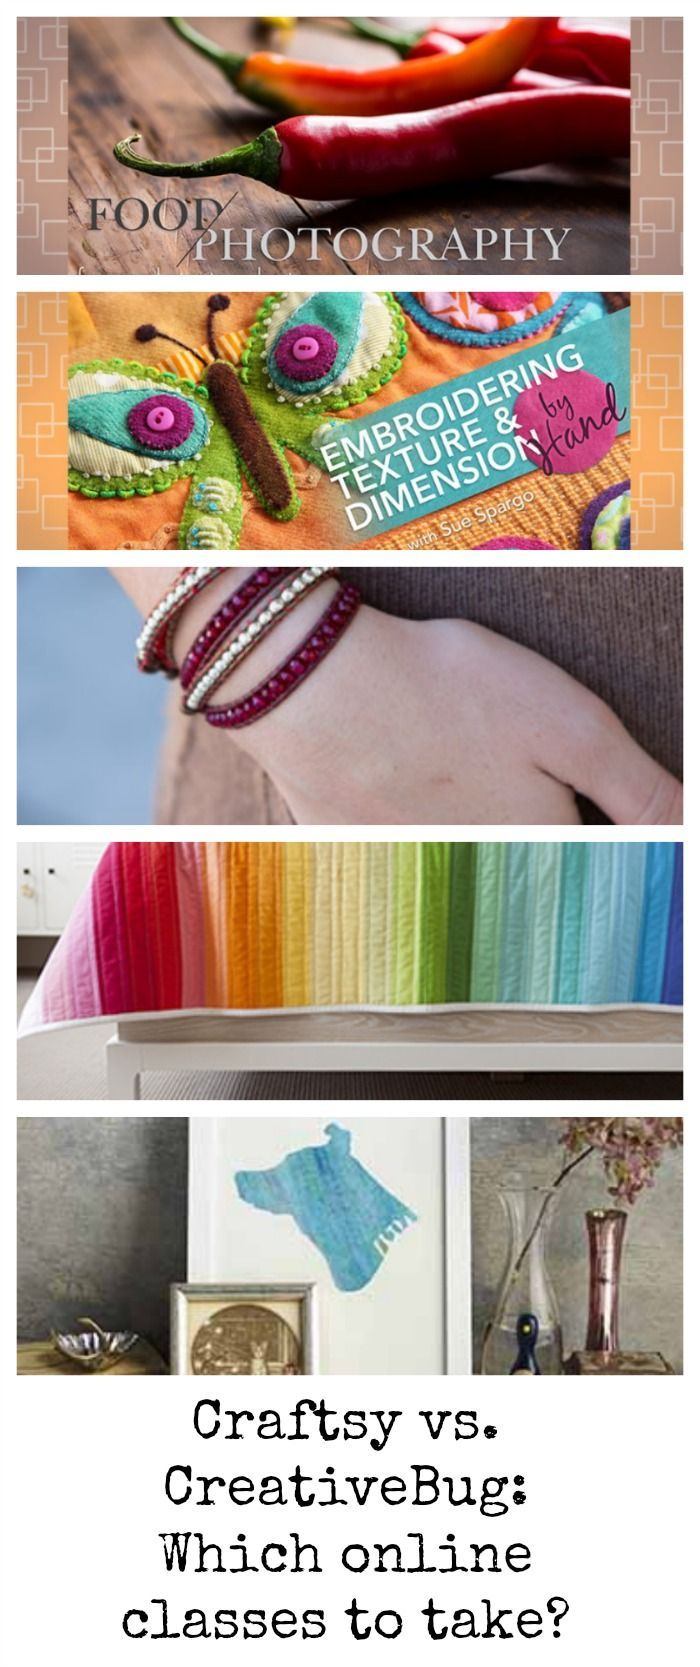 13+ Online craft classes free ideas in 2021